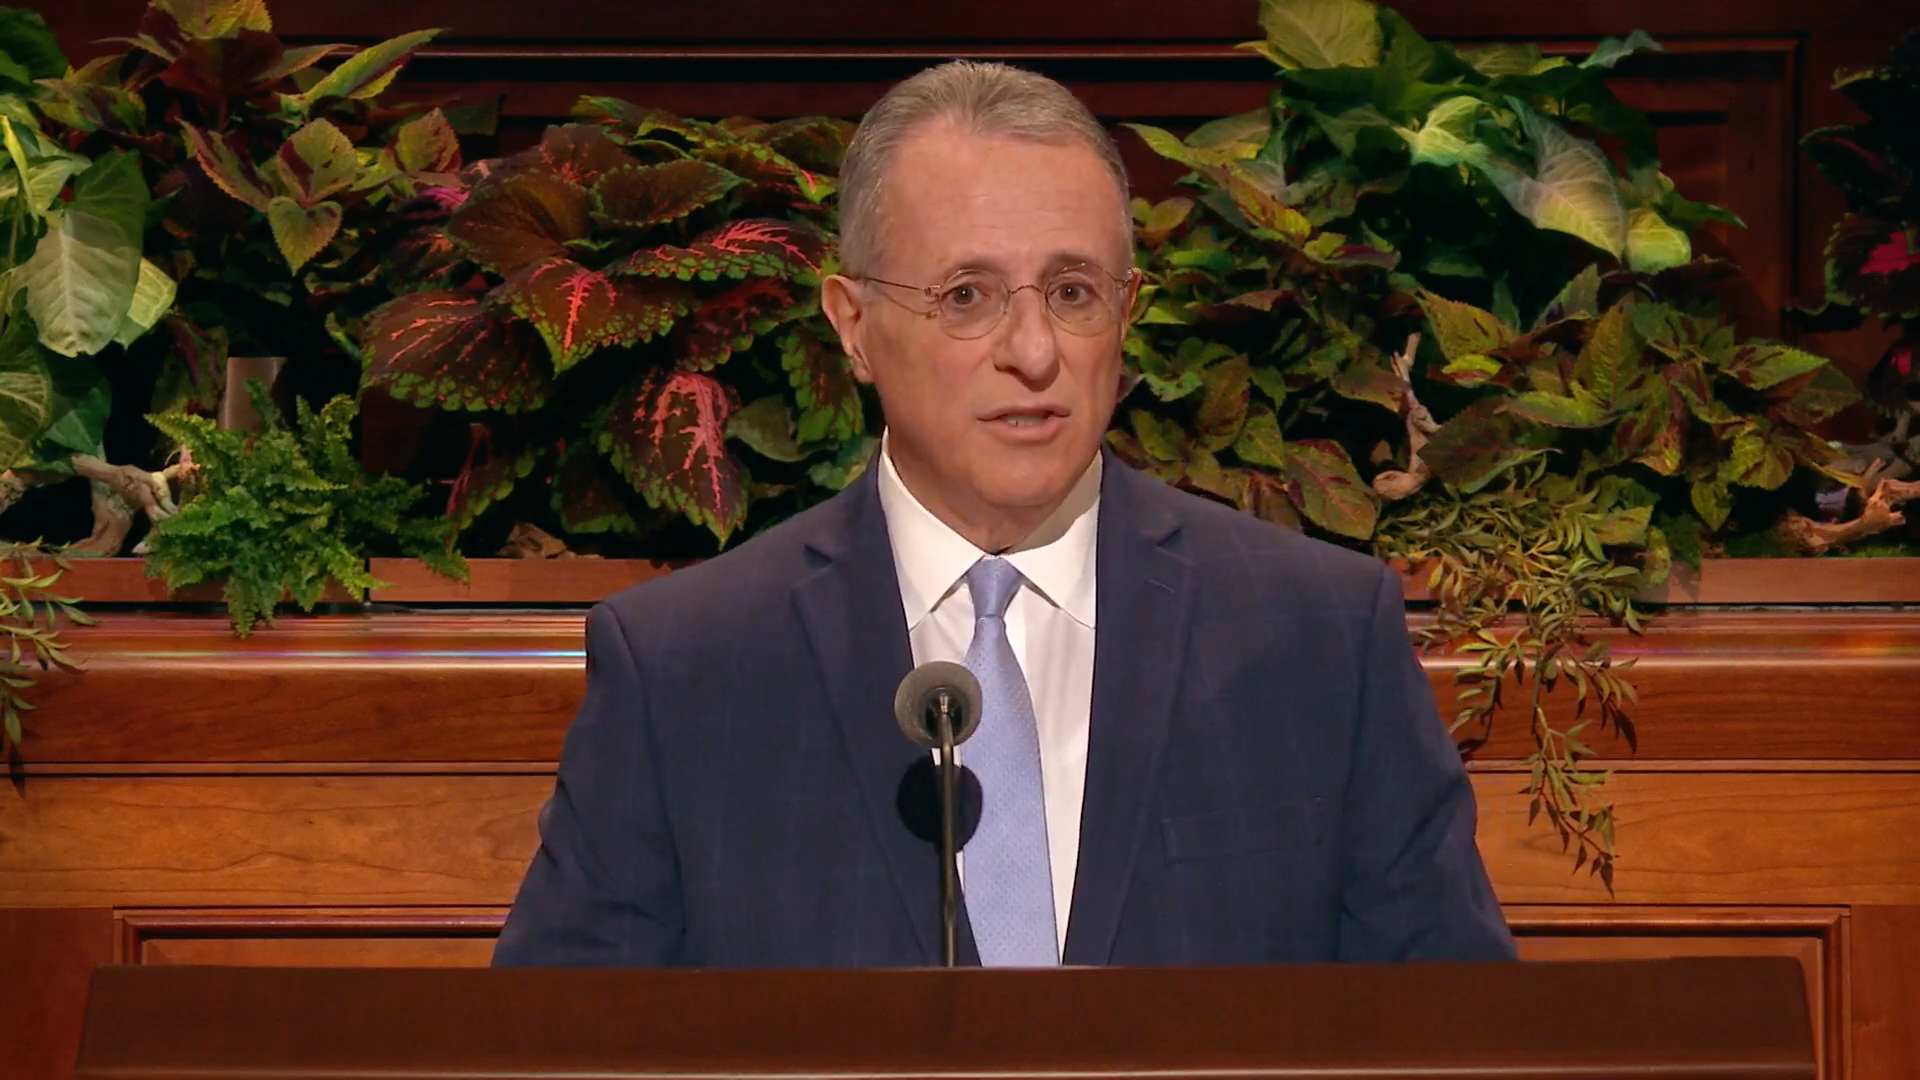 Elder Ulisses Soares of the Quorum of the Twelve Apostles speaks during the Sunday afternoon session in the 189th Semiannual General Conference of the Church on Sunday, Oct. 6, 2019.